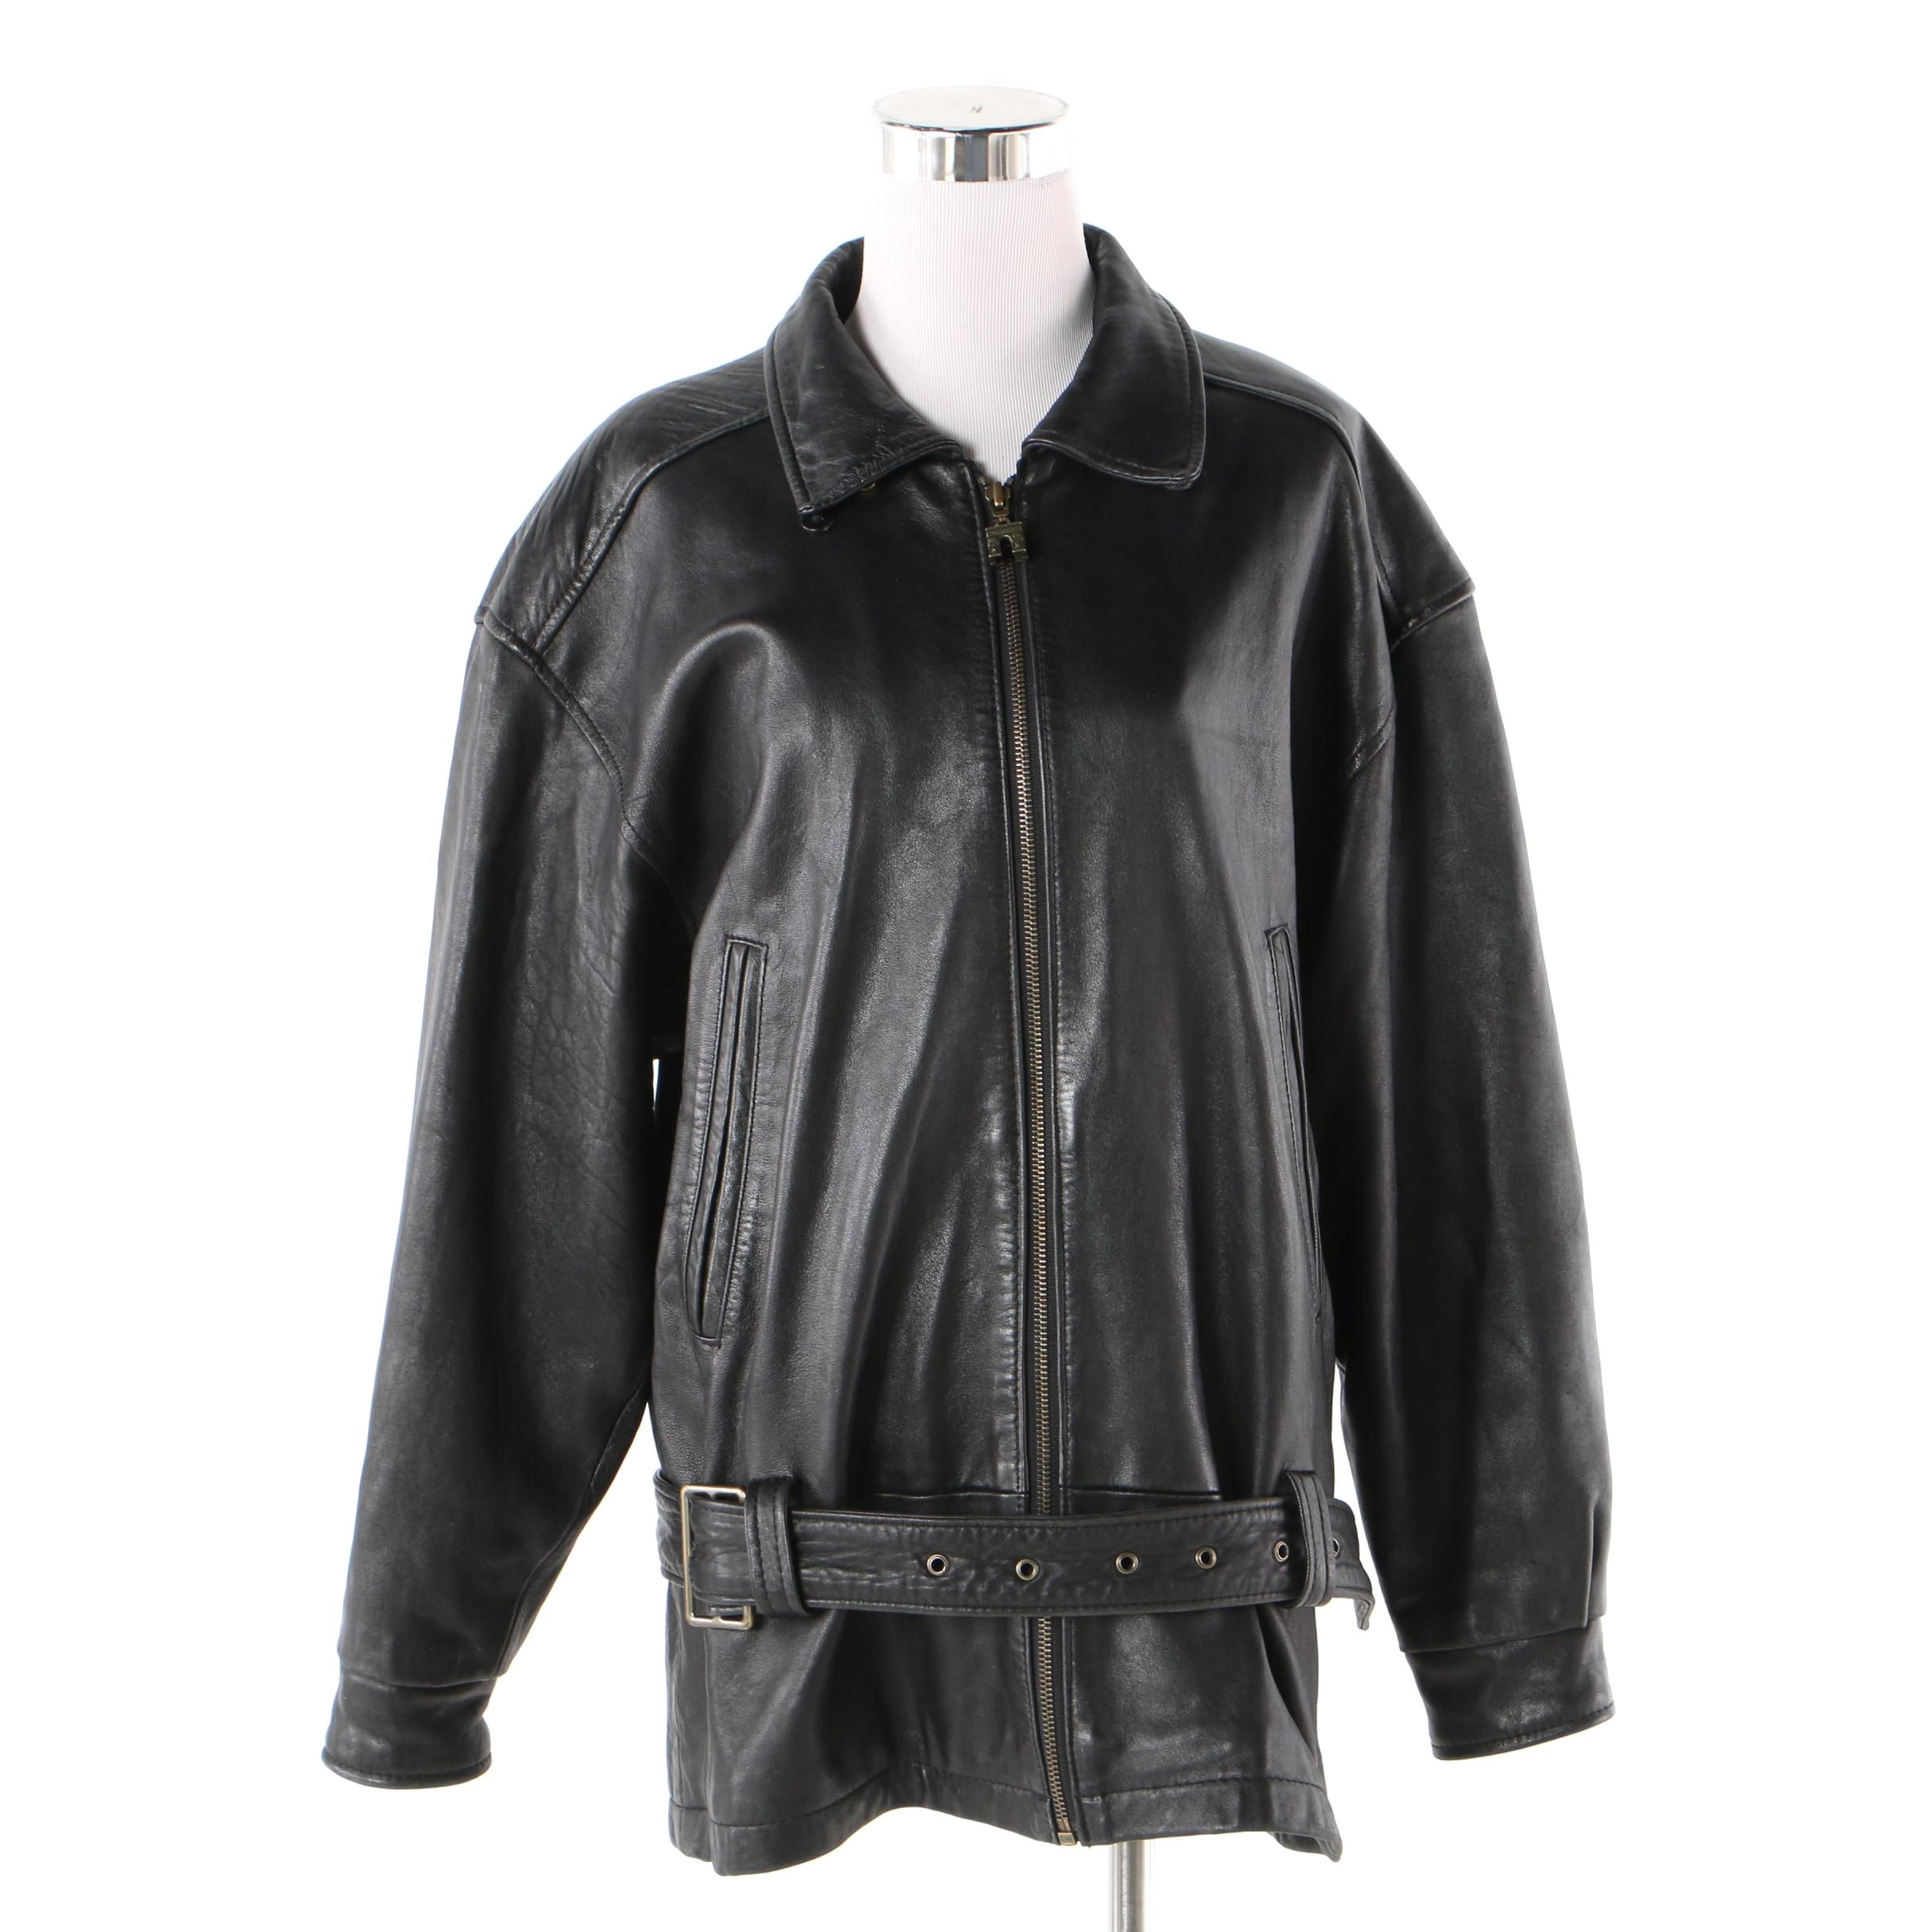 Women's 1980s Vintage Express Avenue De L'Opera Black Leather Jacket